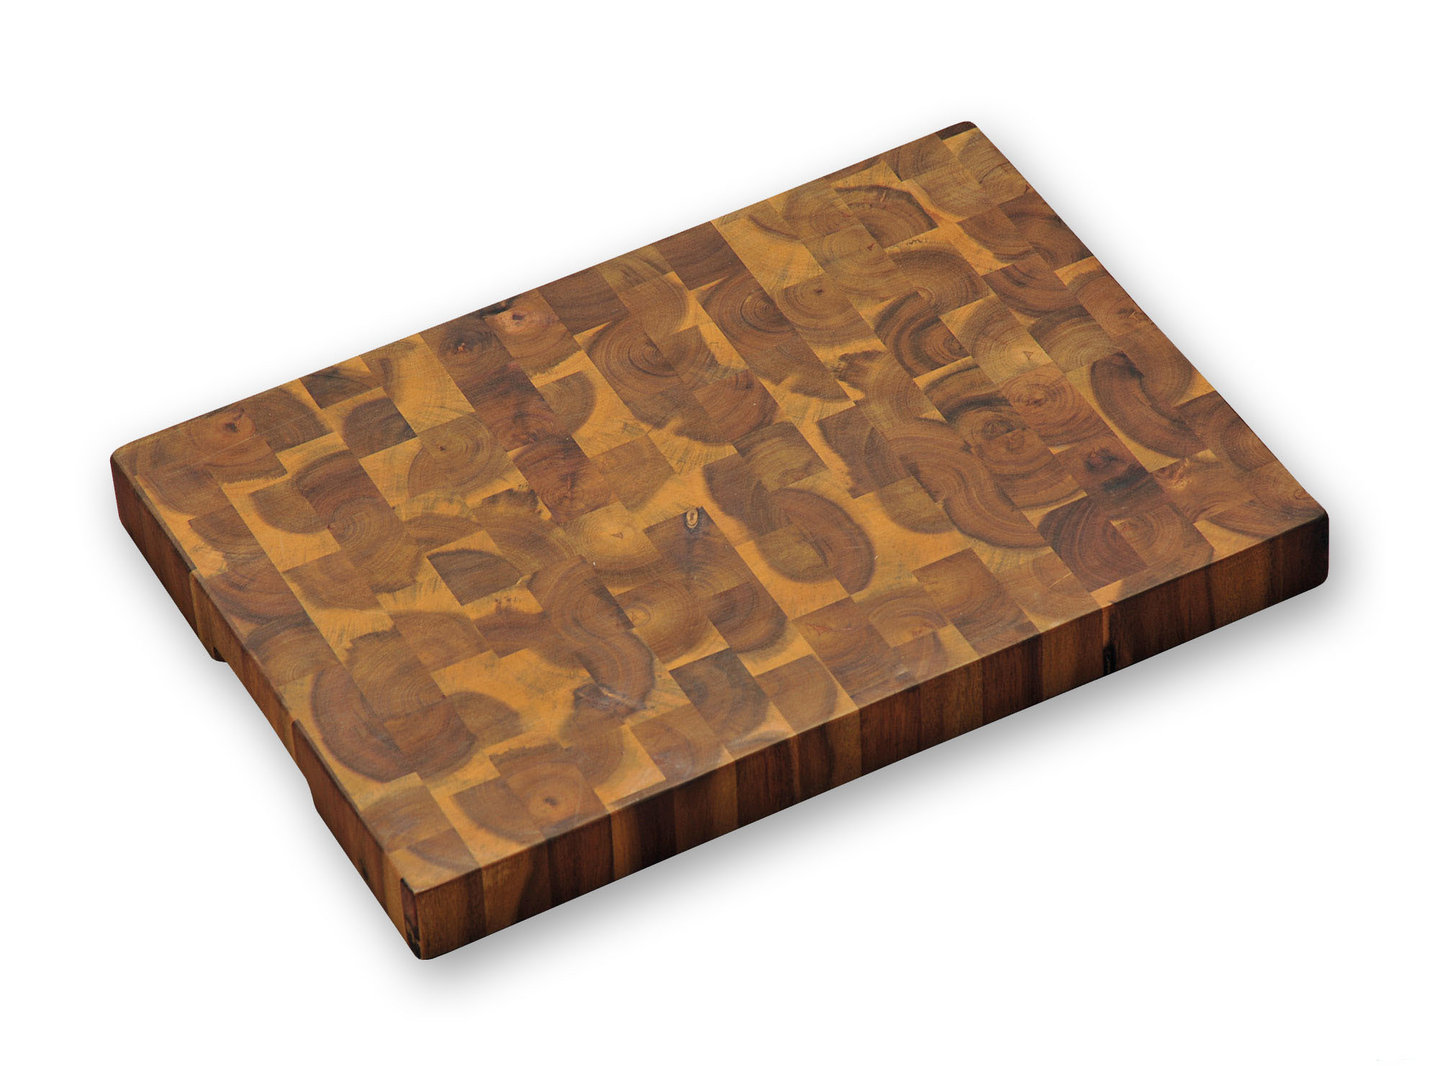 KESPER acacia wood end grain cutting board 42 x 30 x 4 cm